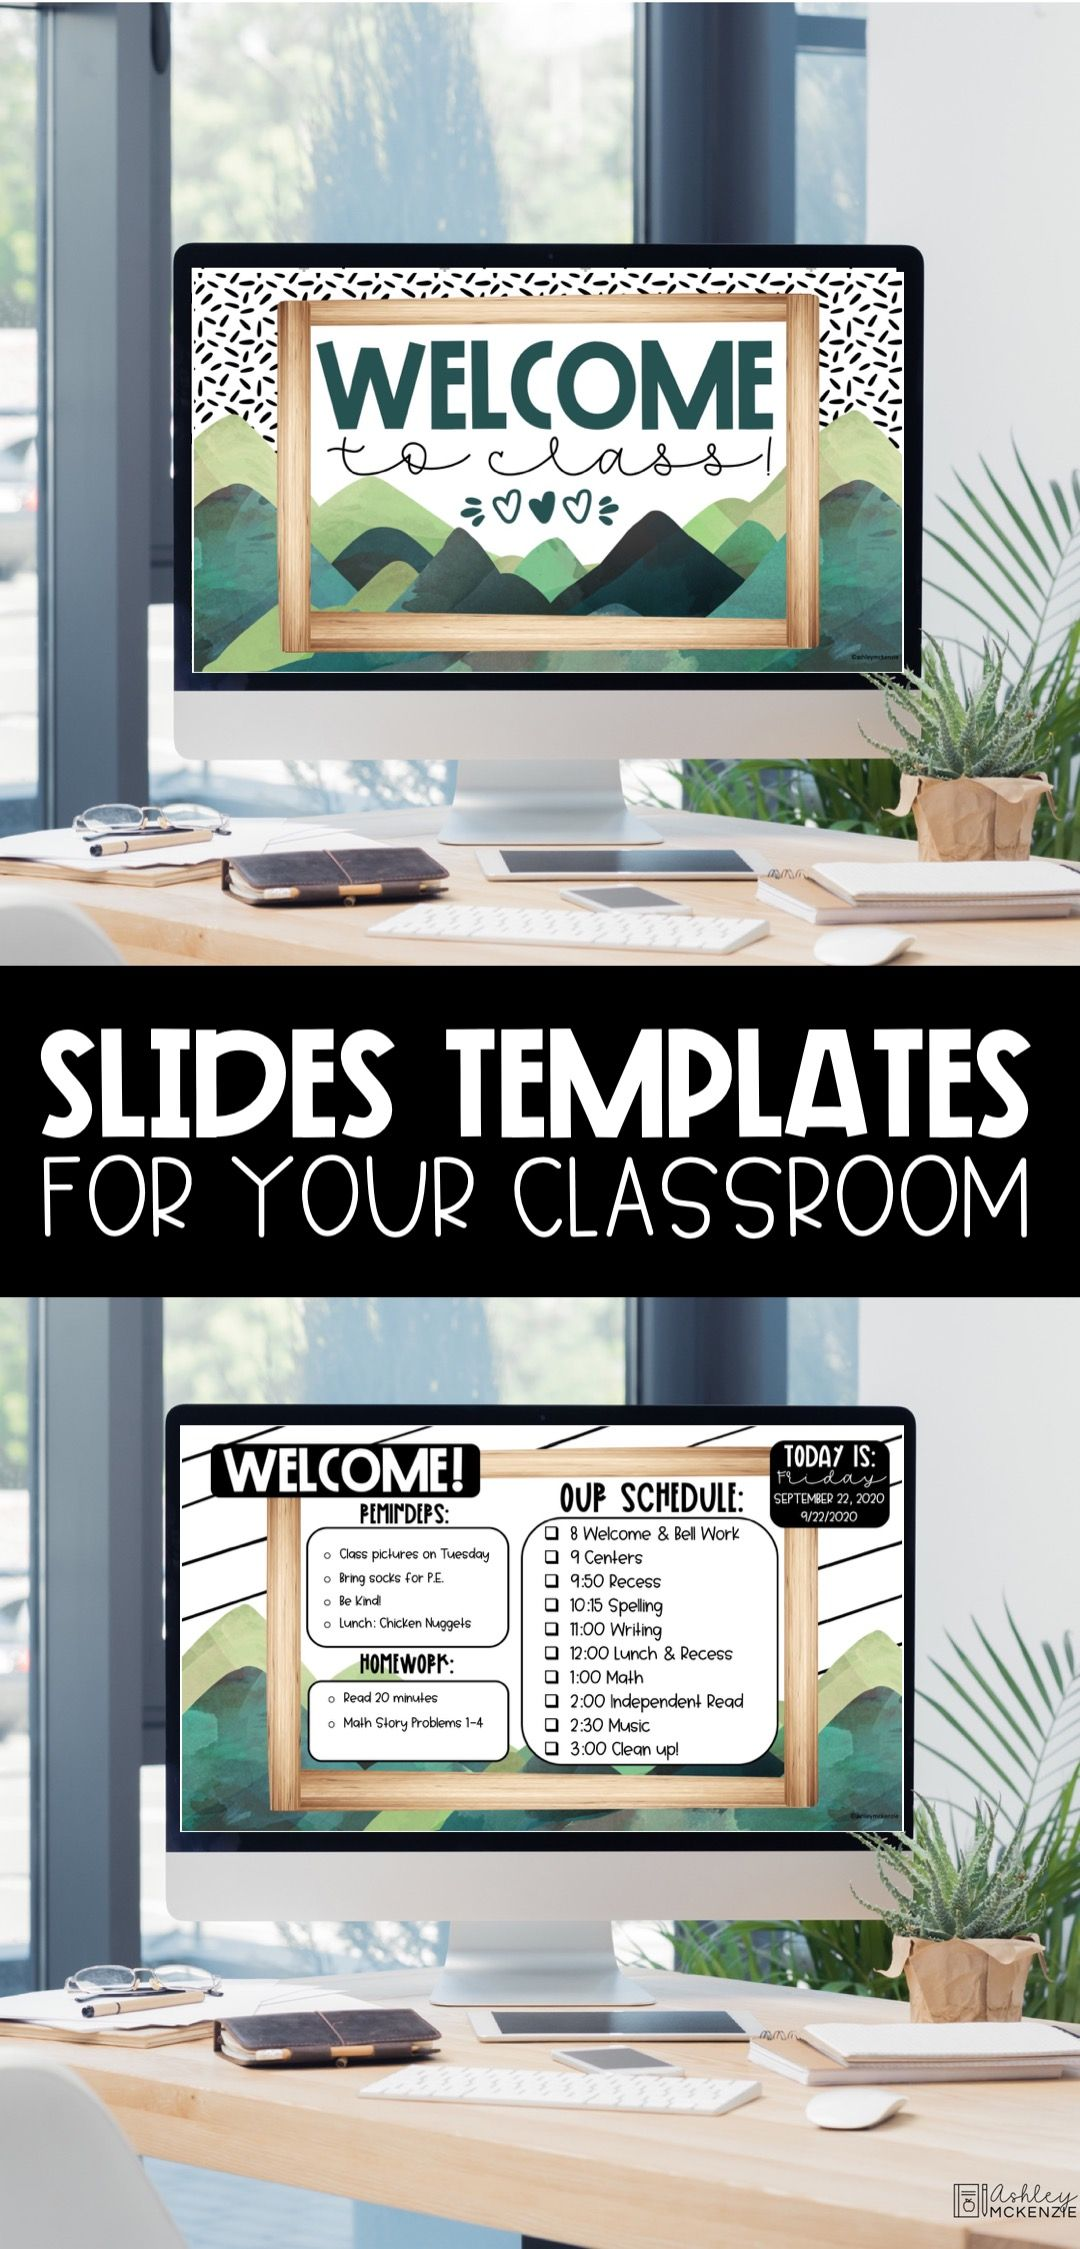 Google Slide Templates for the classroom.